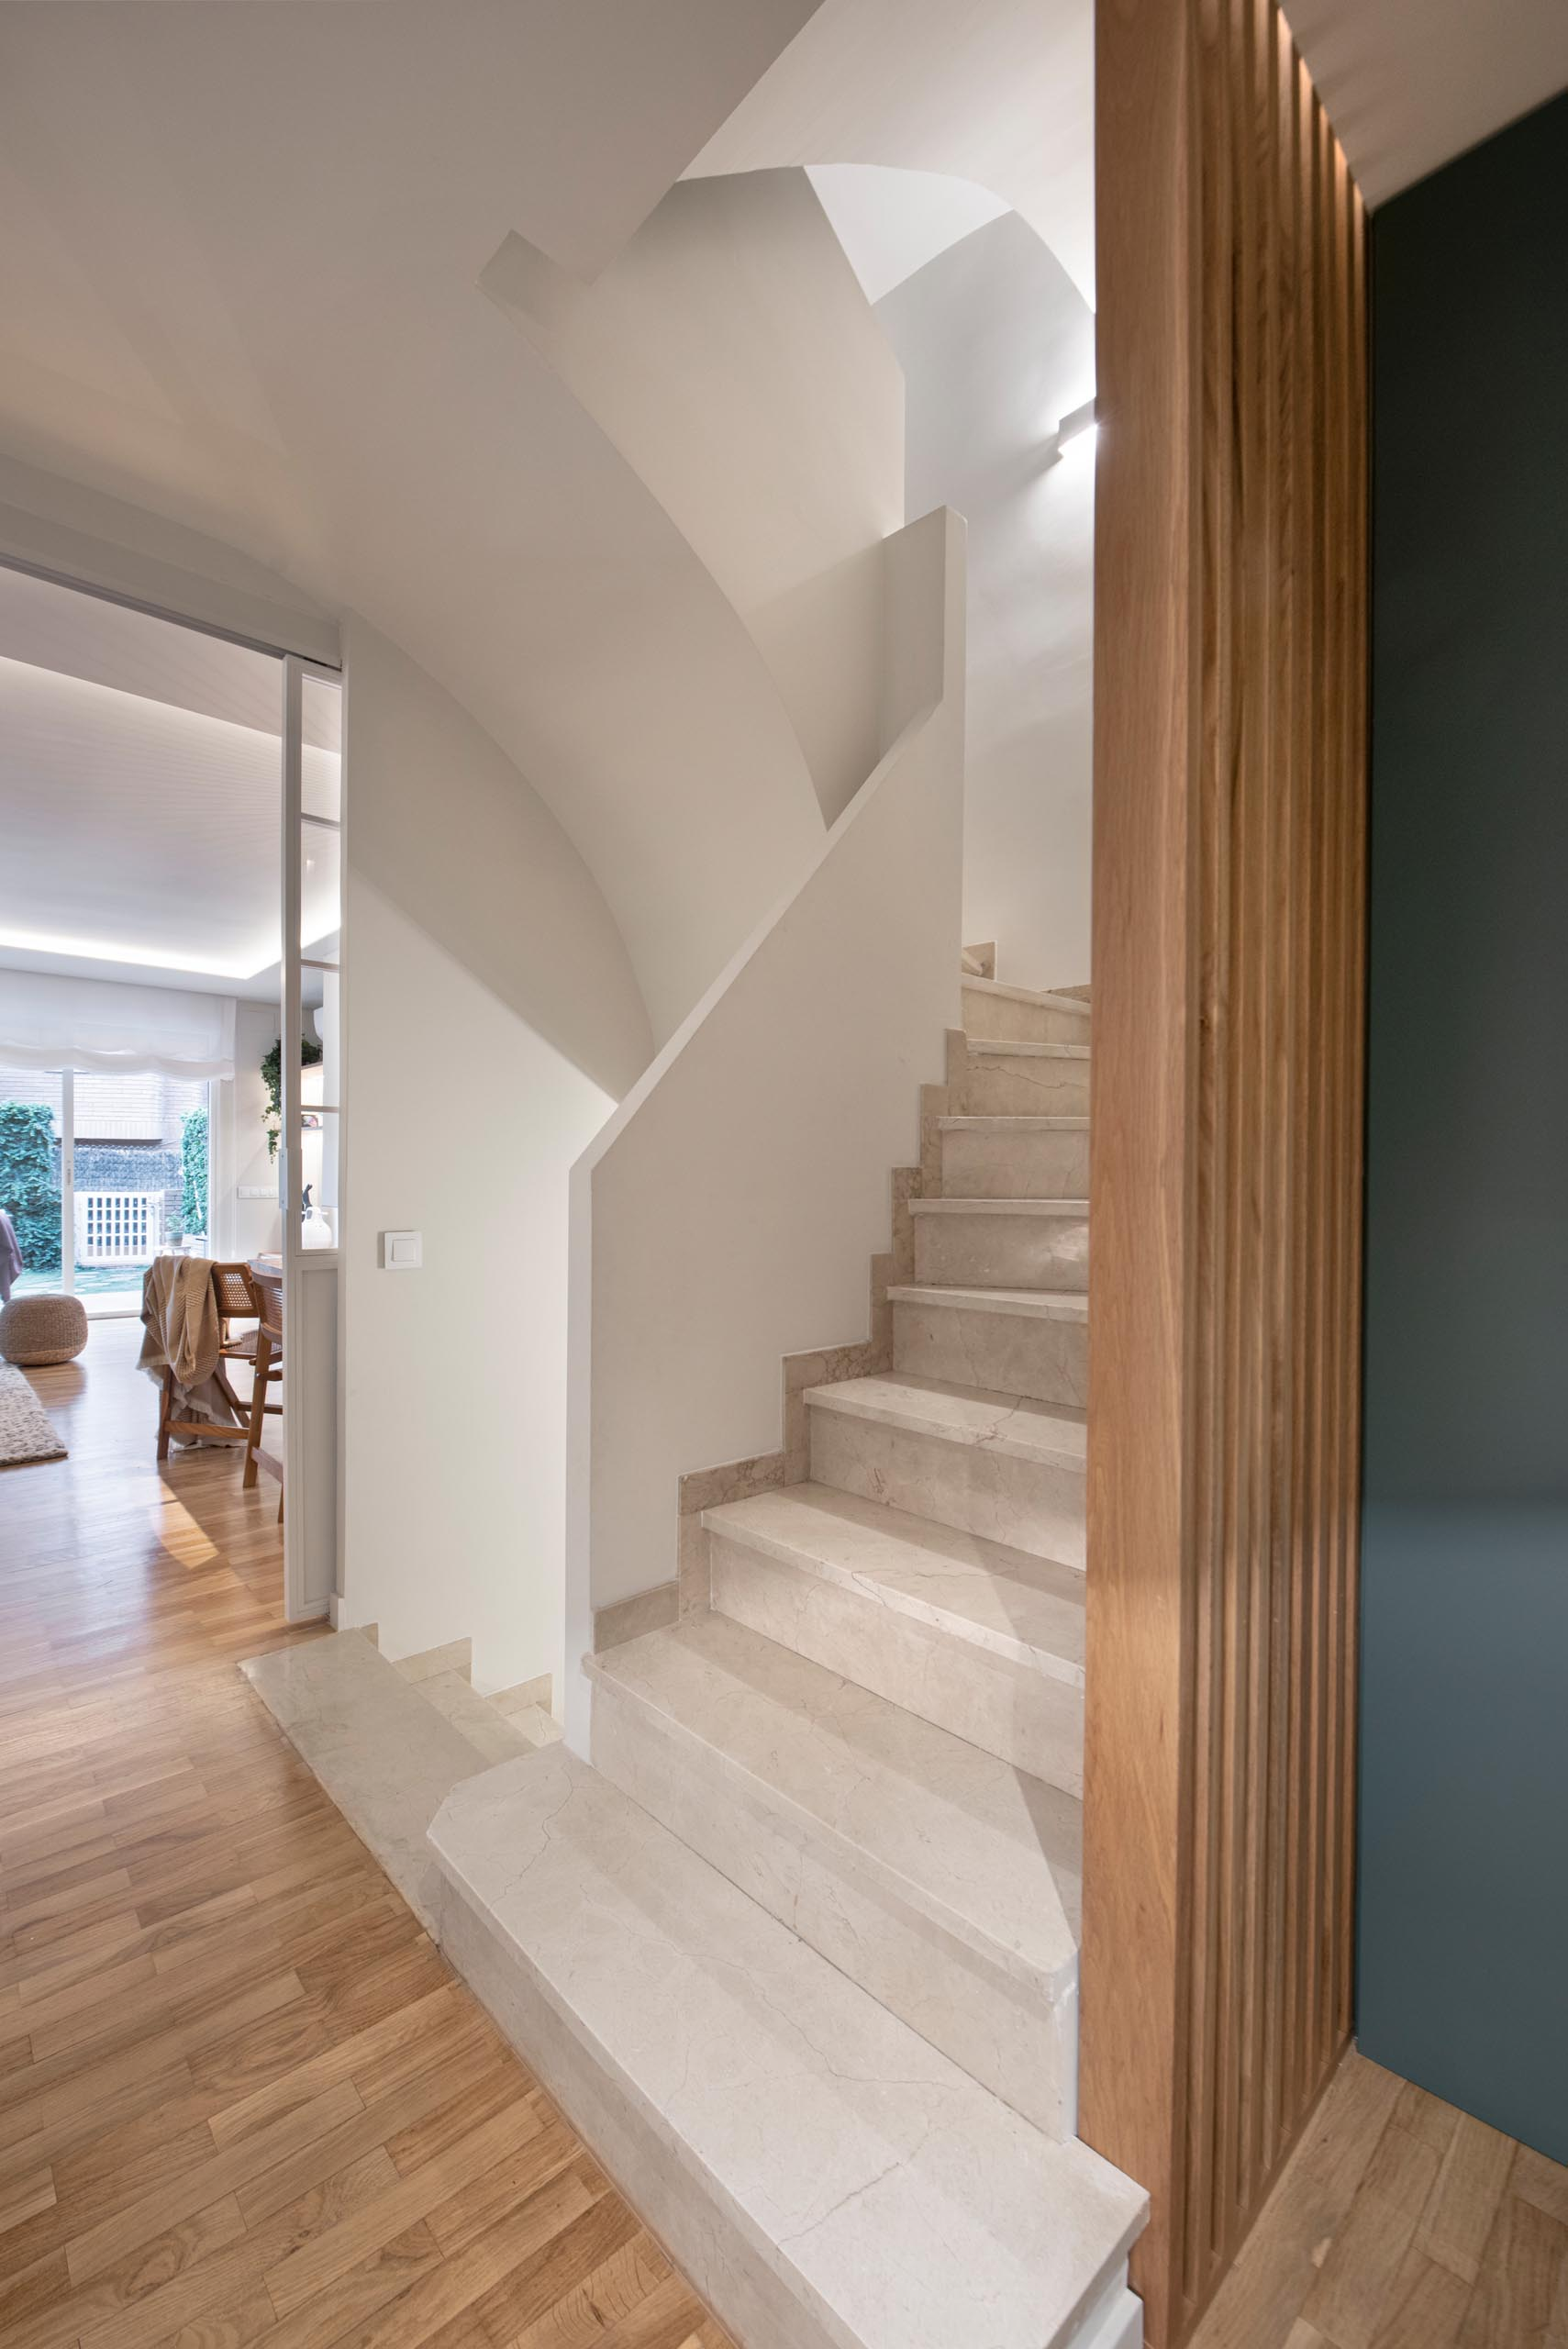 A semi-open staircase connects the various levels of this modern home.